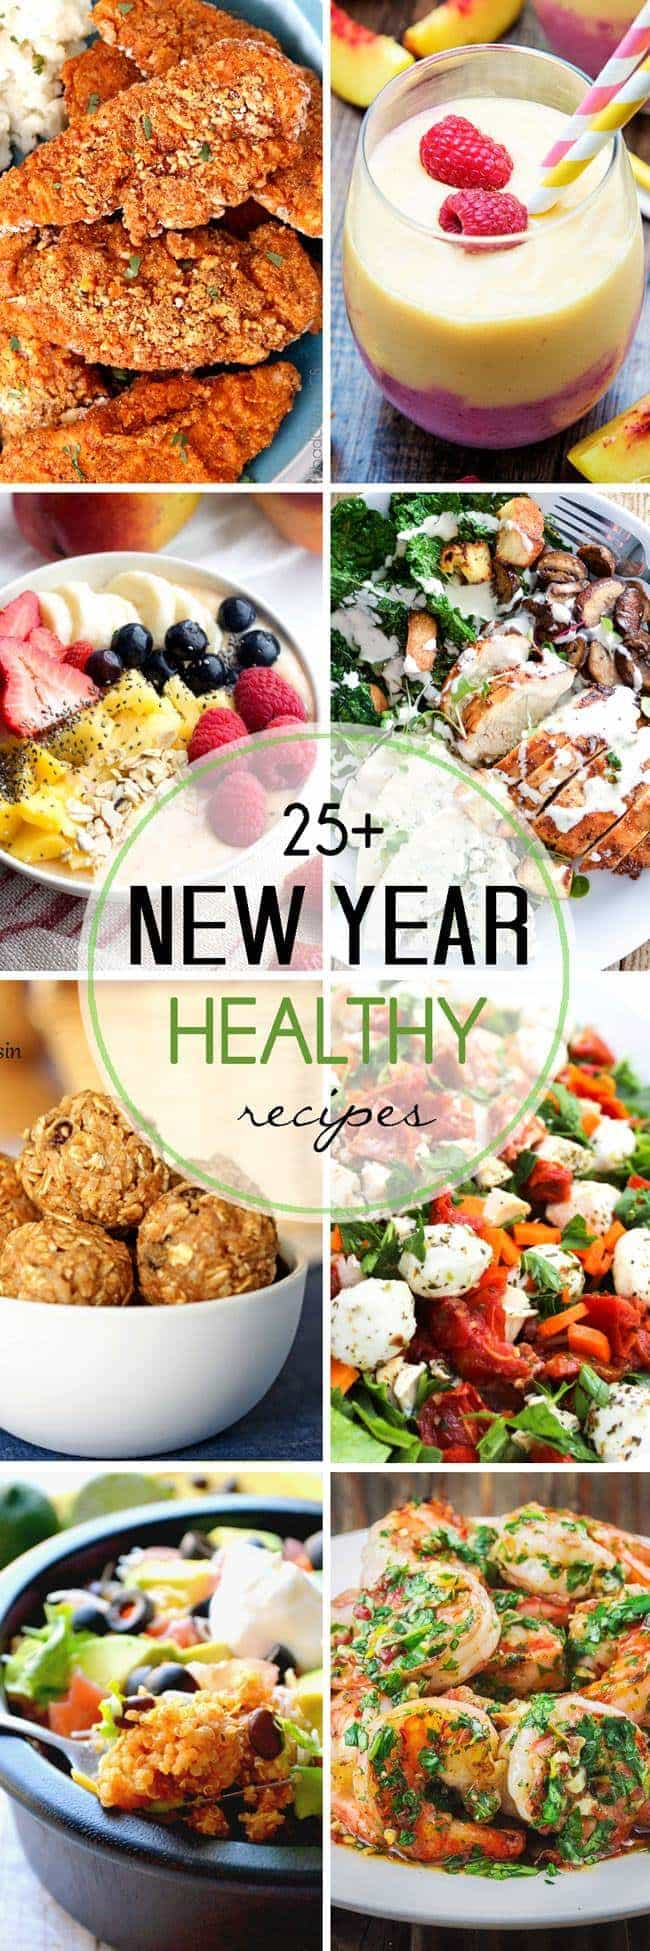 More than 25 Healthy Recipes to start the New Year off right!